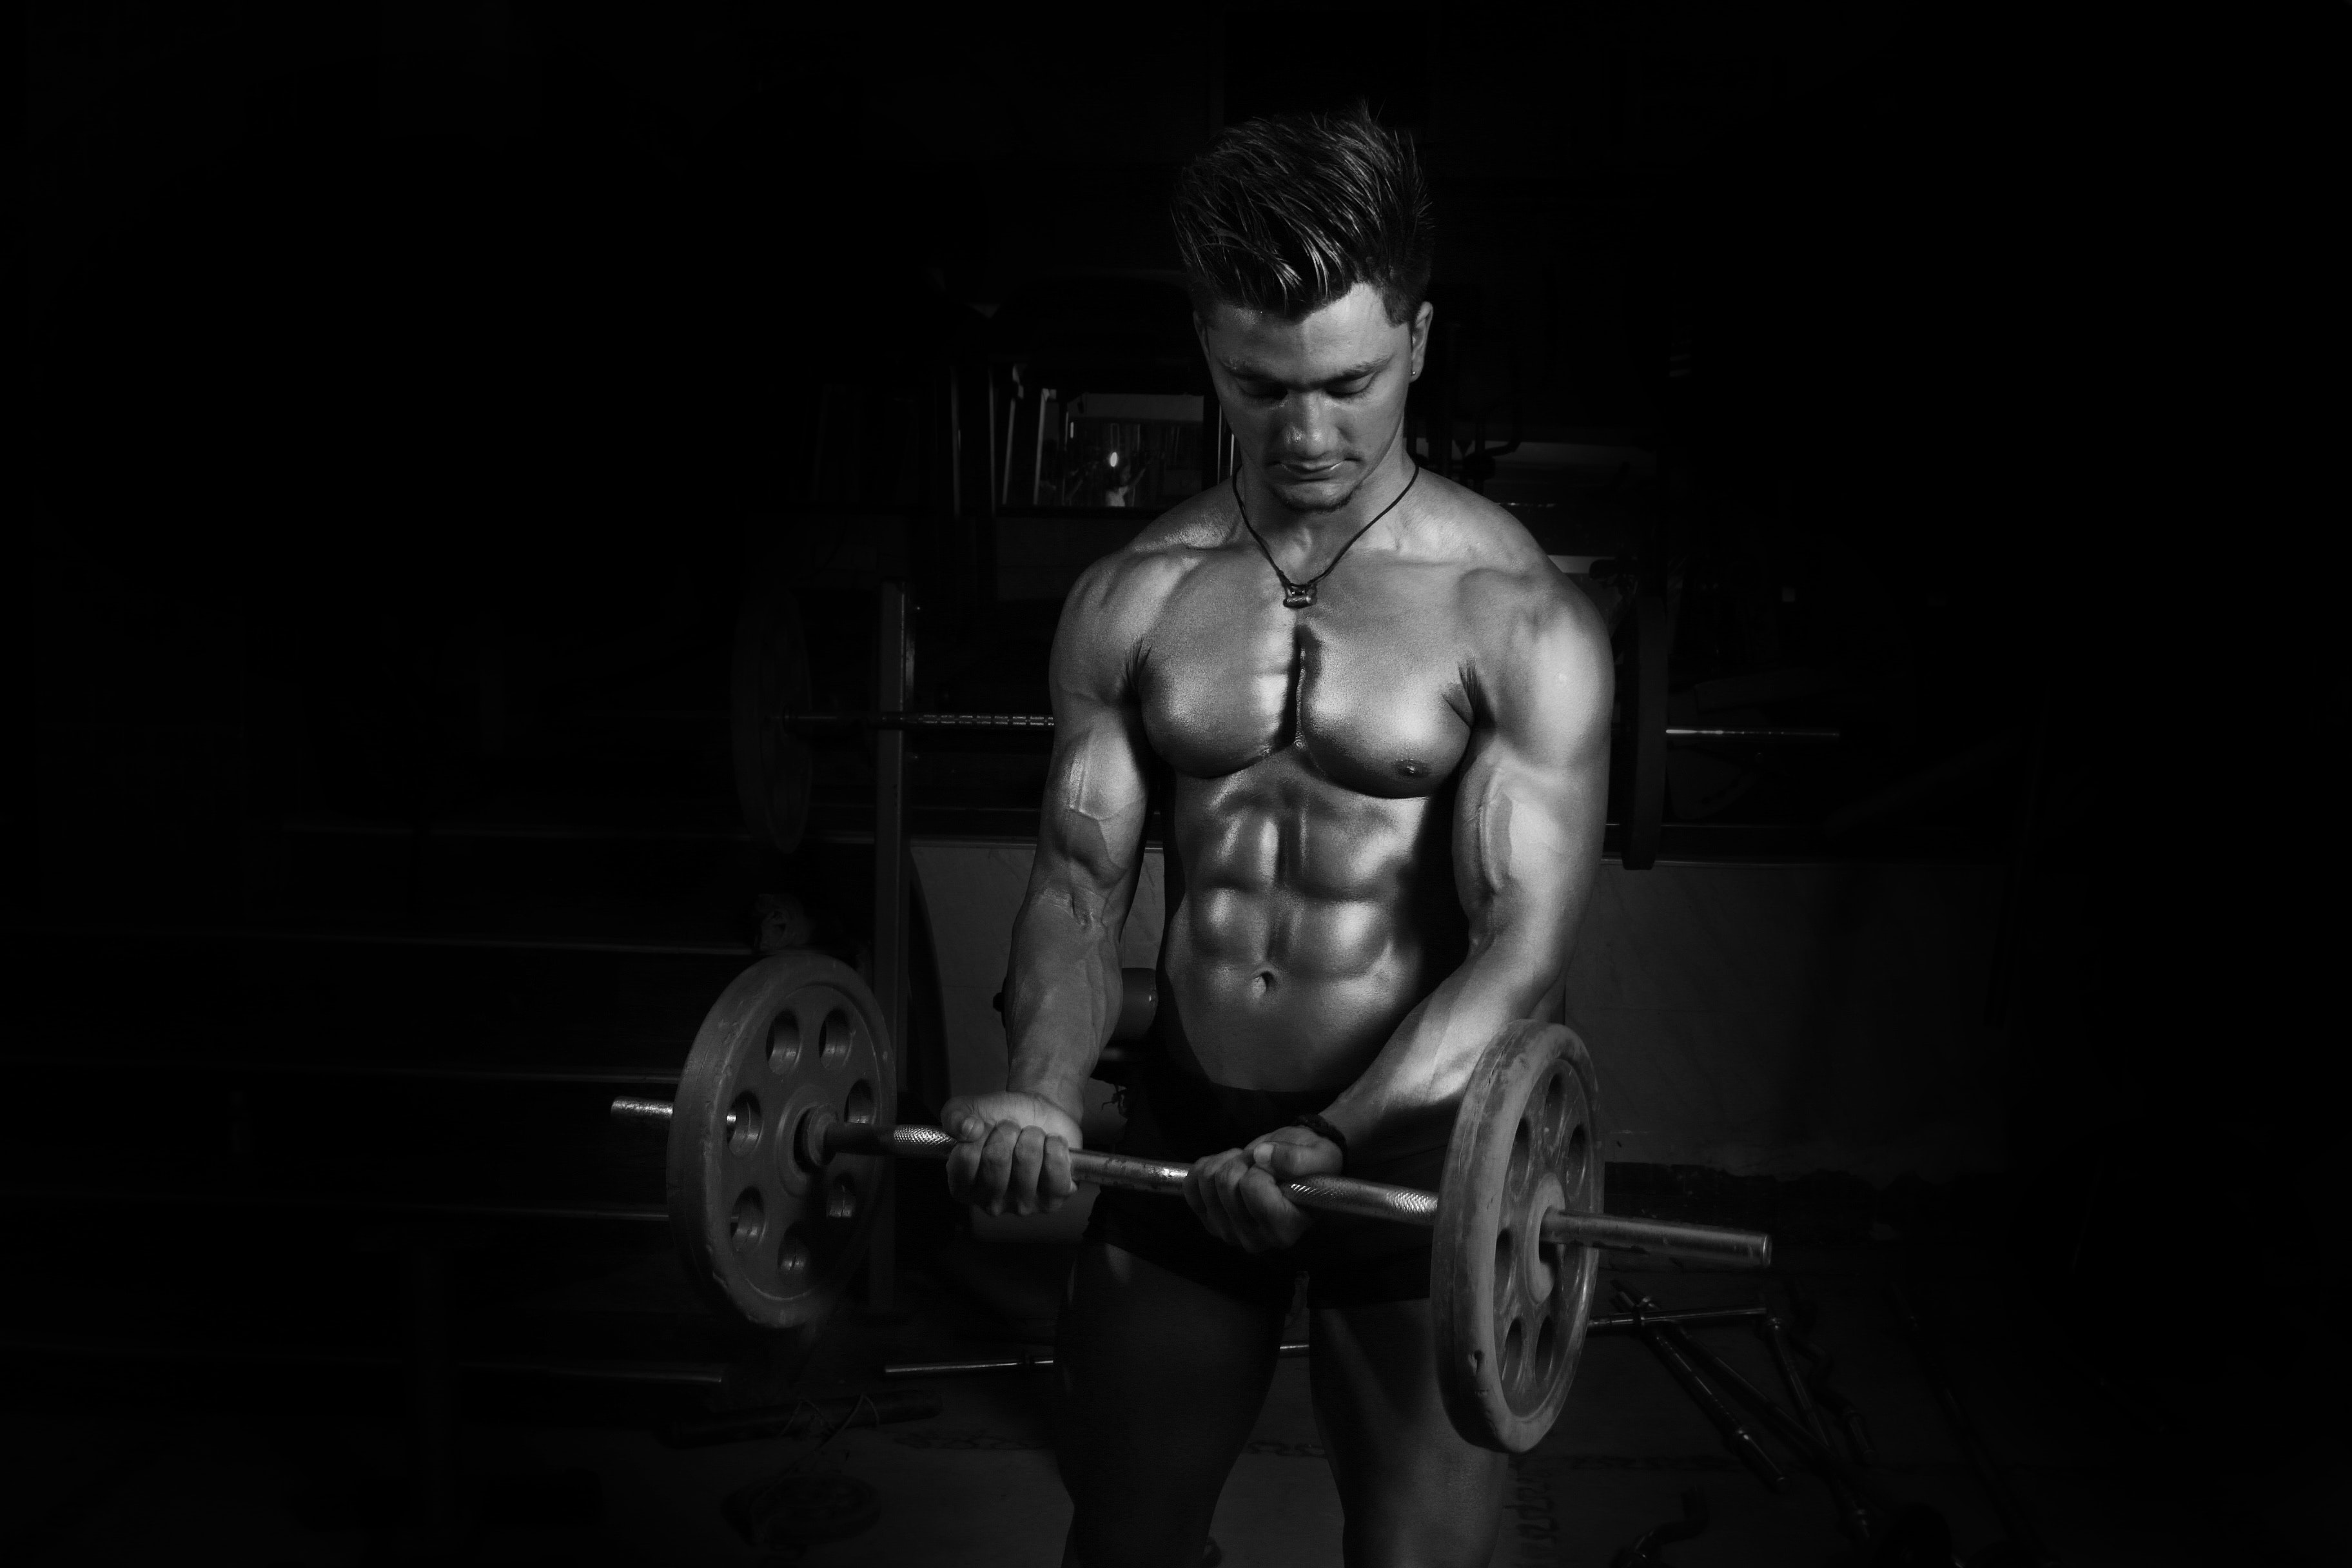 Grayscale Photography of Man Carrying Barbell, Athlete, Human, Weights, Weightlifting, HQ Photo